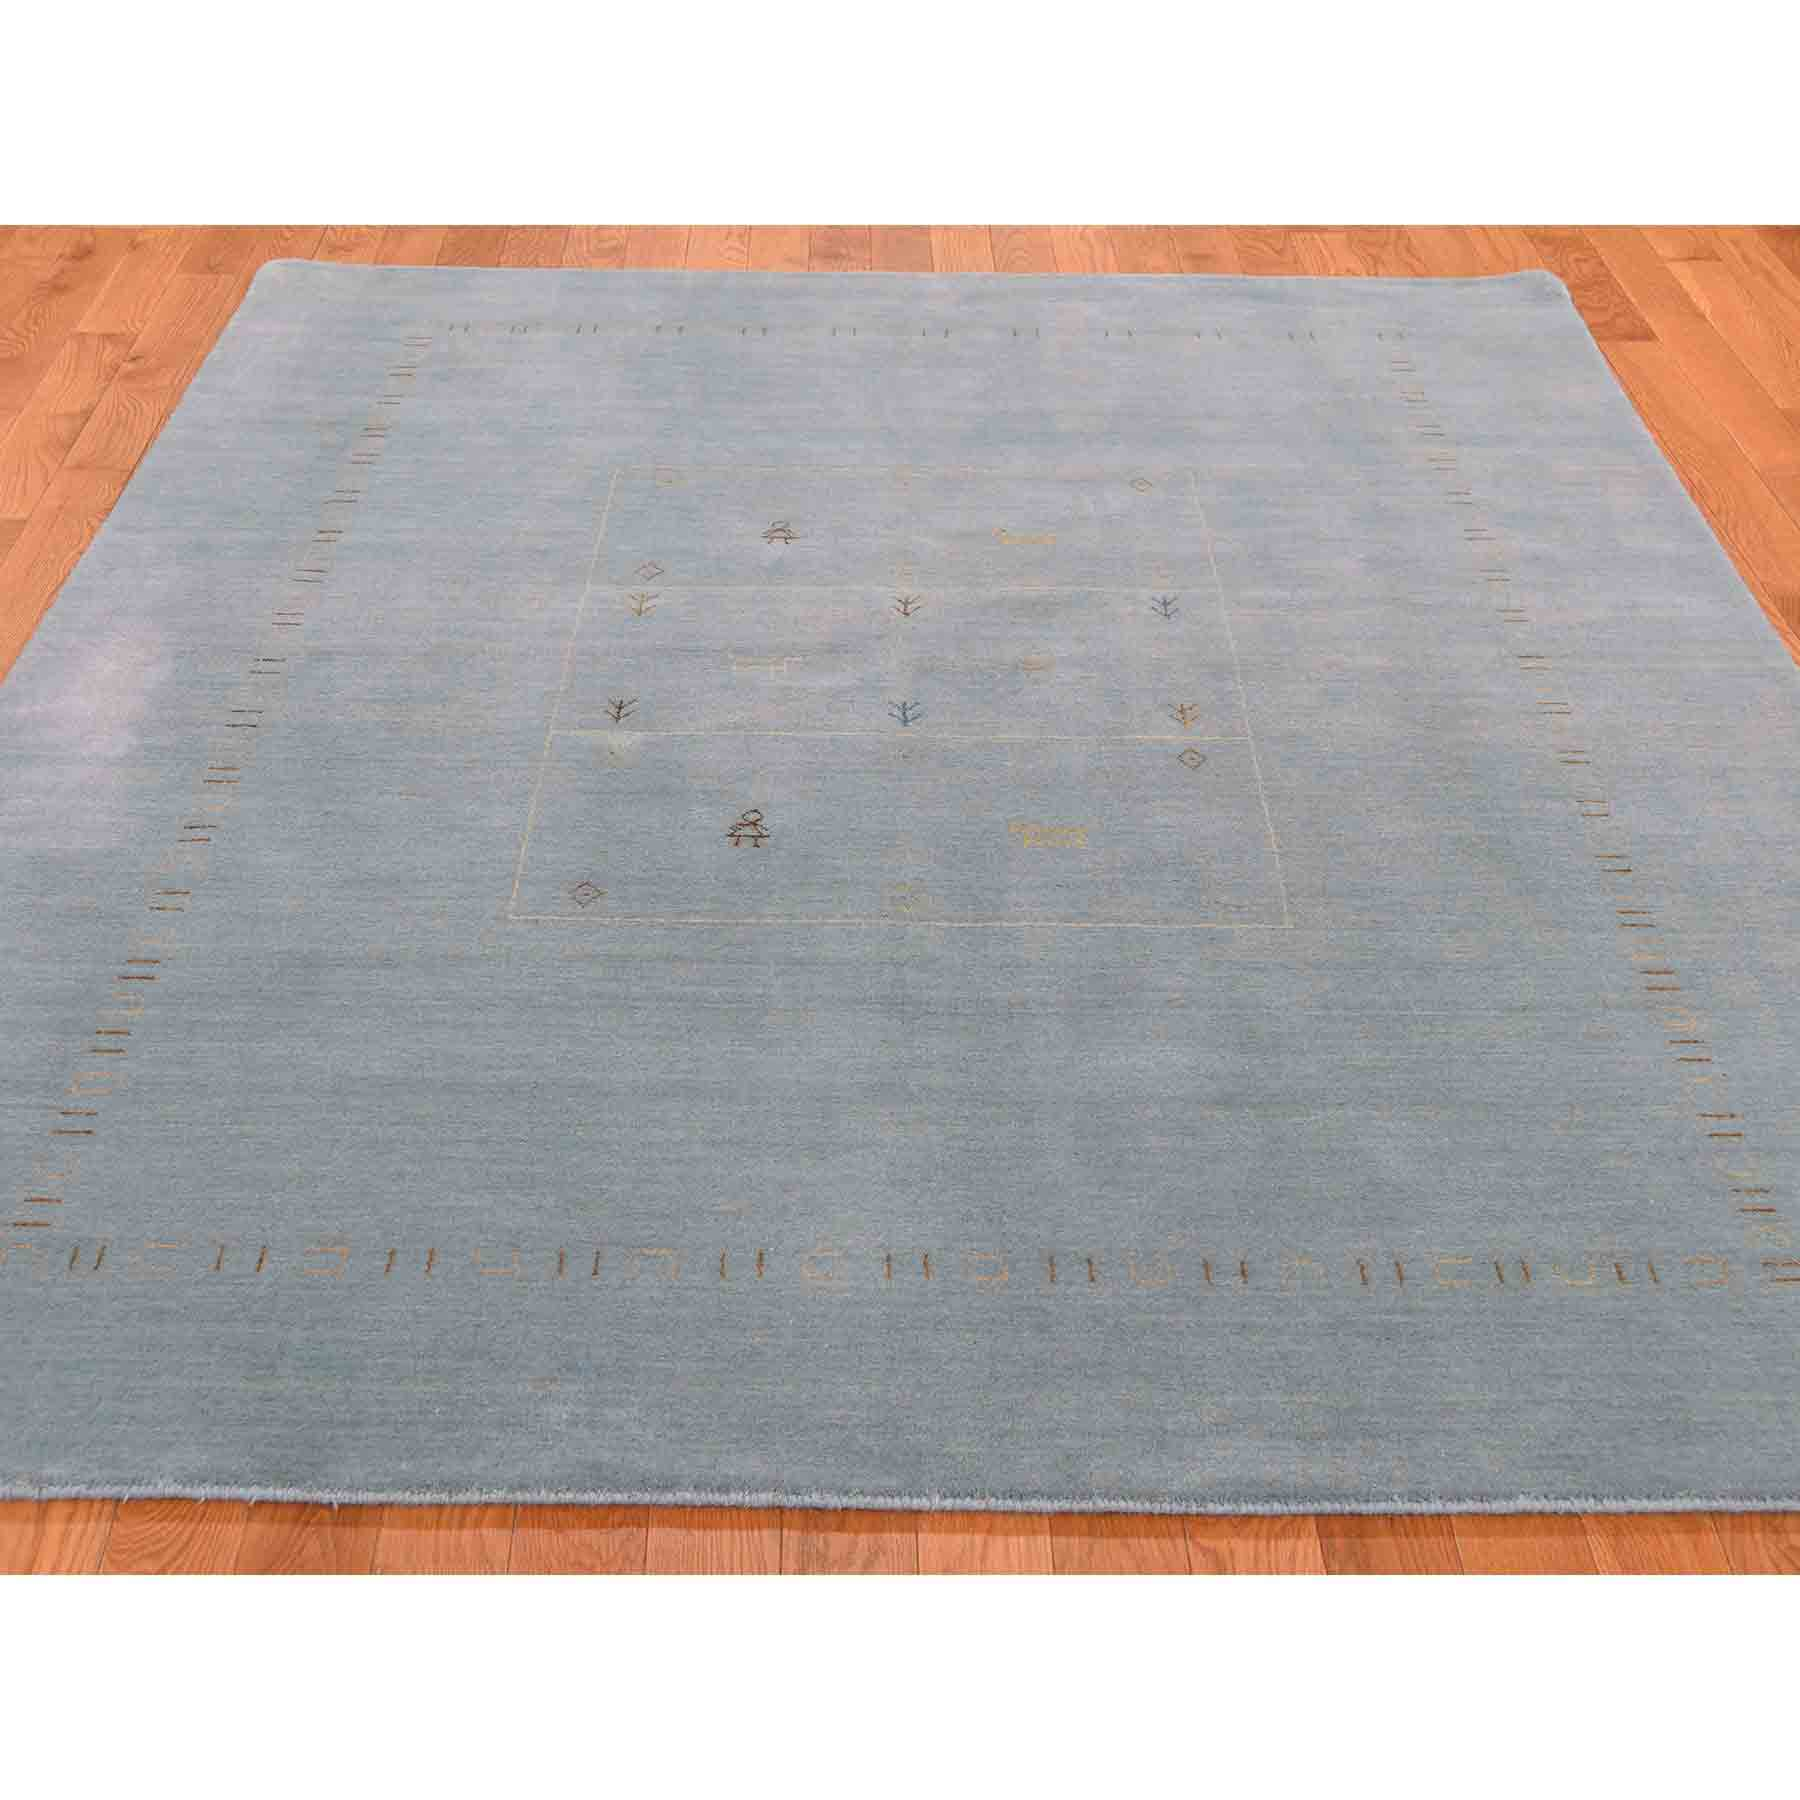 Modern-and-Contemporary-Hand-Loomed-Rug-230165